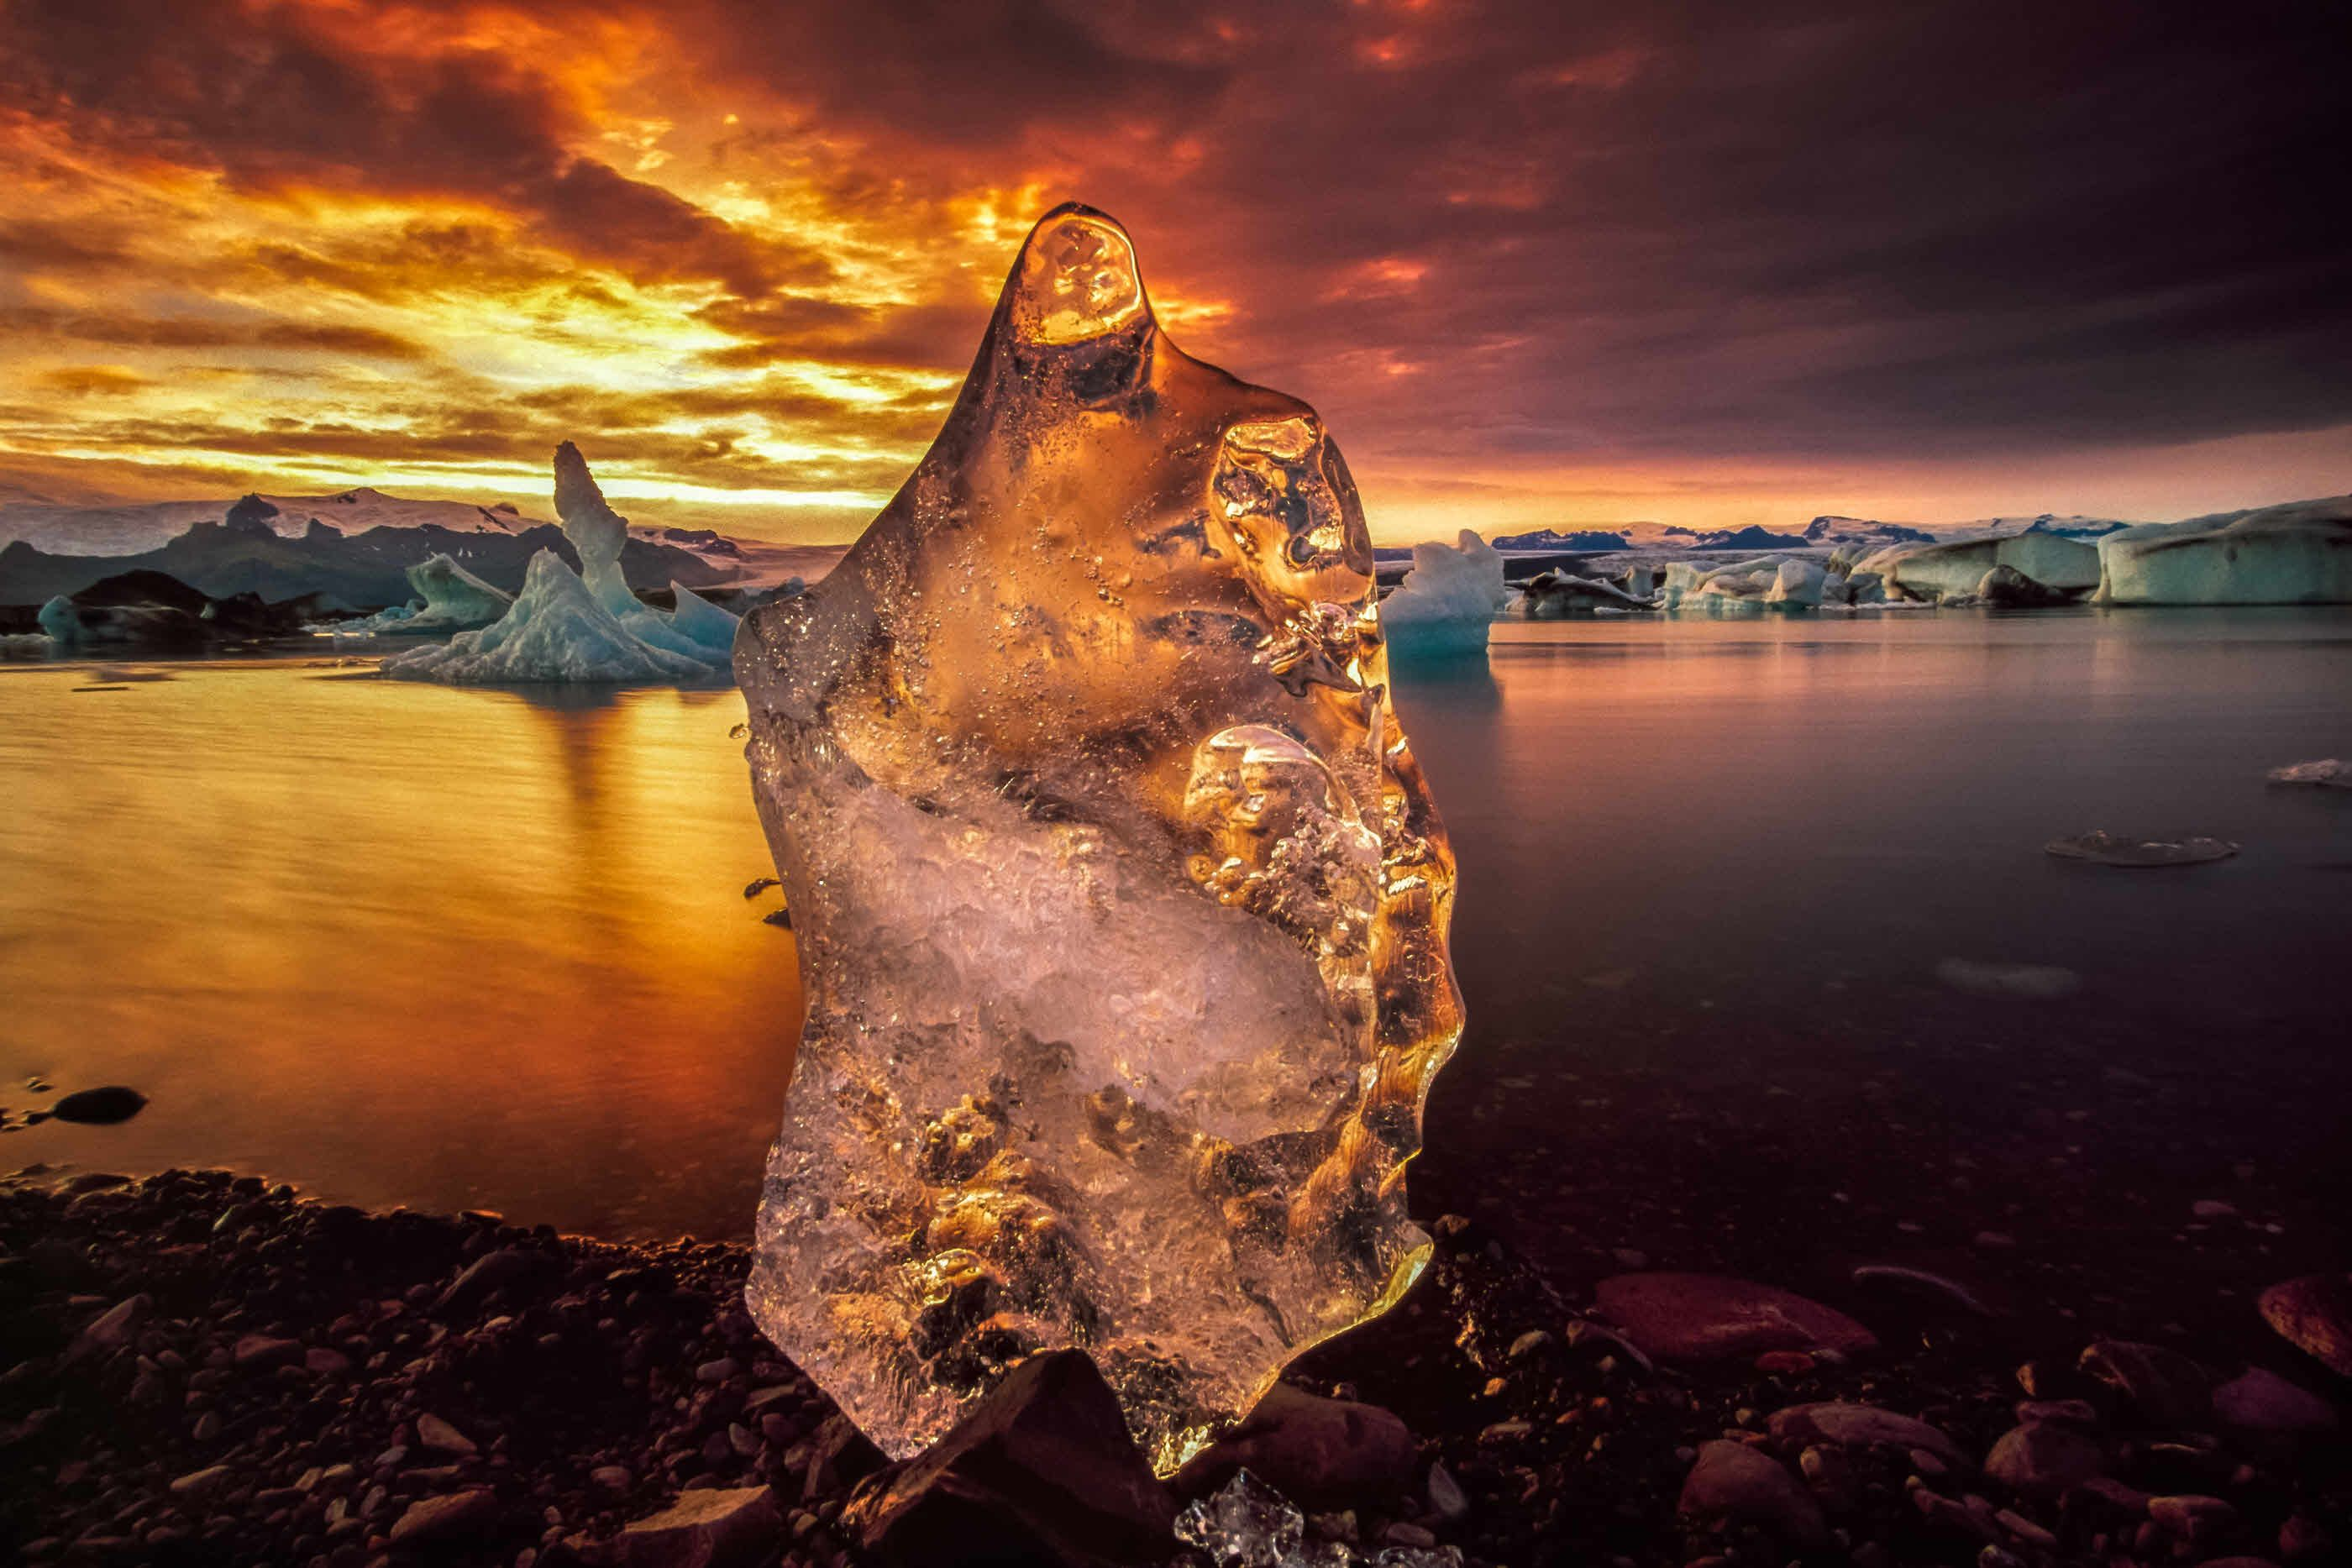 Gallery 18 Incredible Photos From The Edge By Art Wolfe